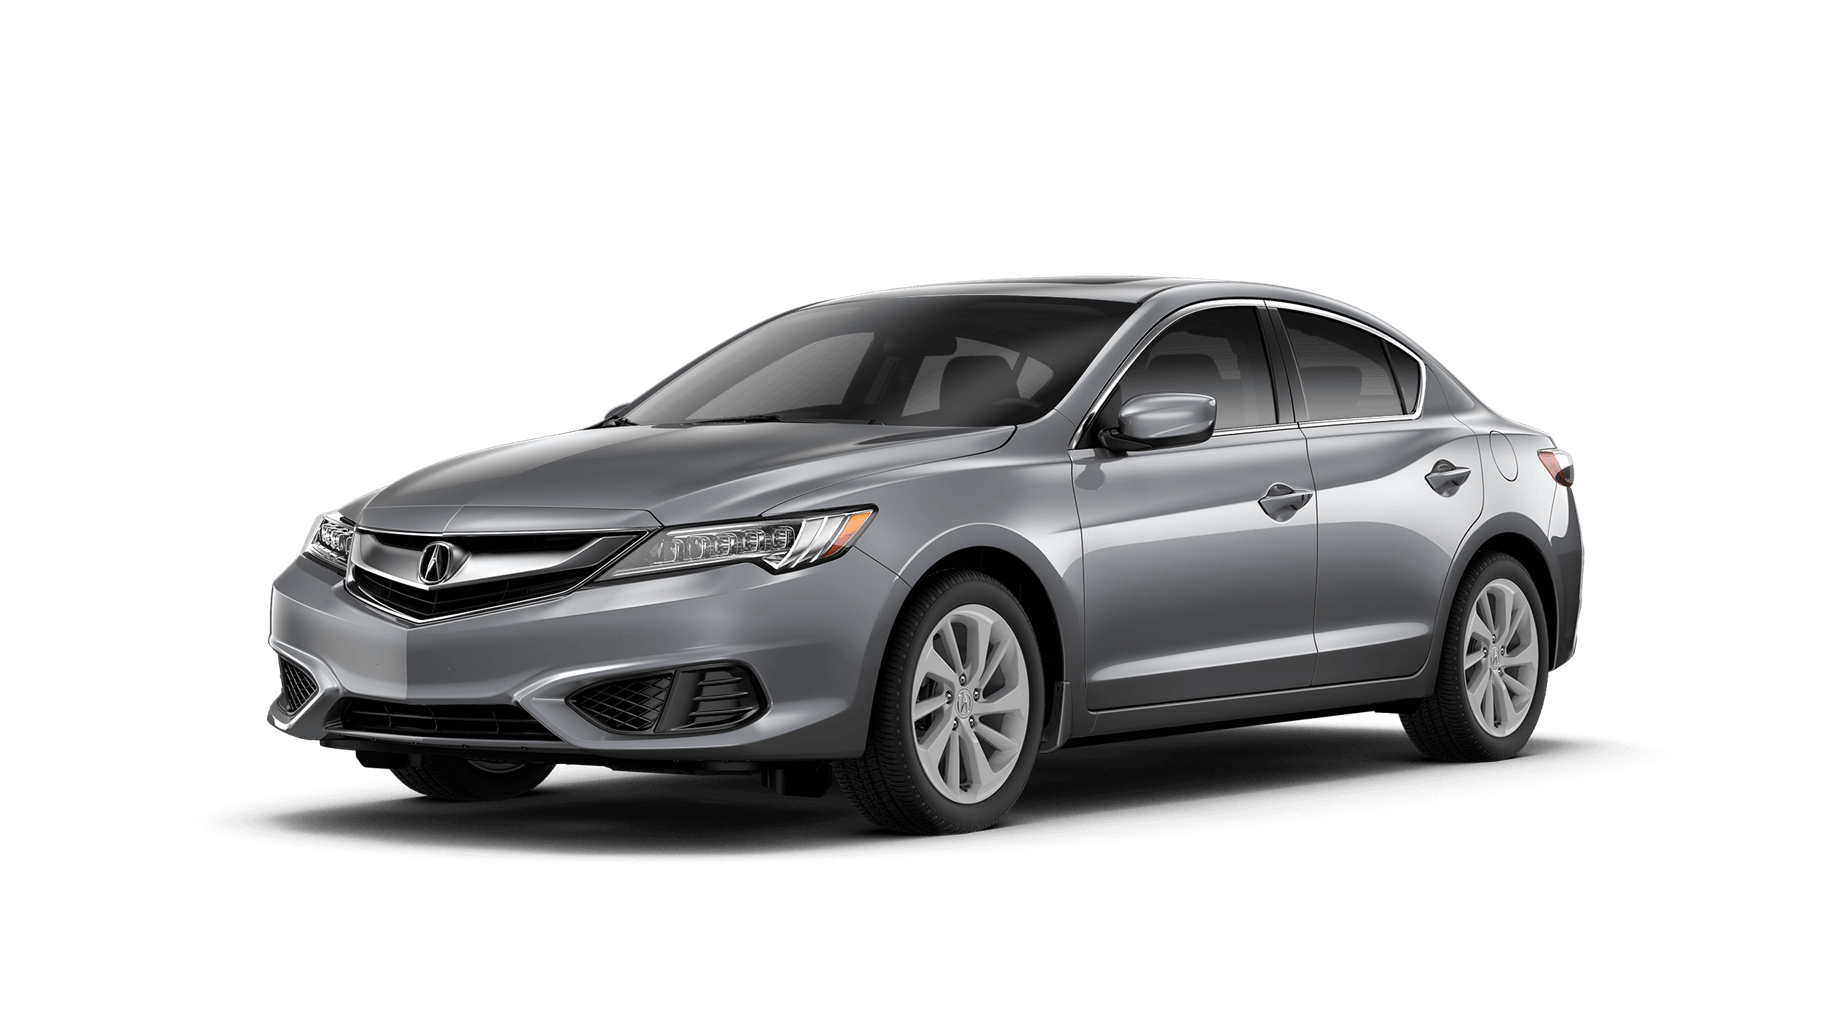 2017 Acura ILX at your local Acura Dealership located near New Westminster